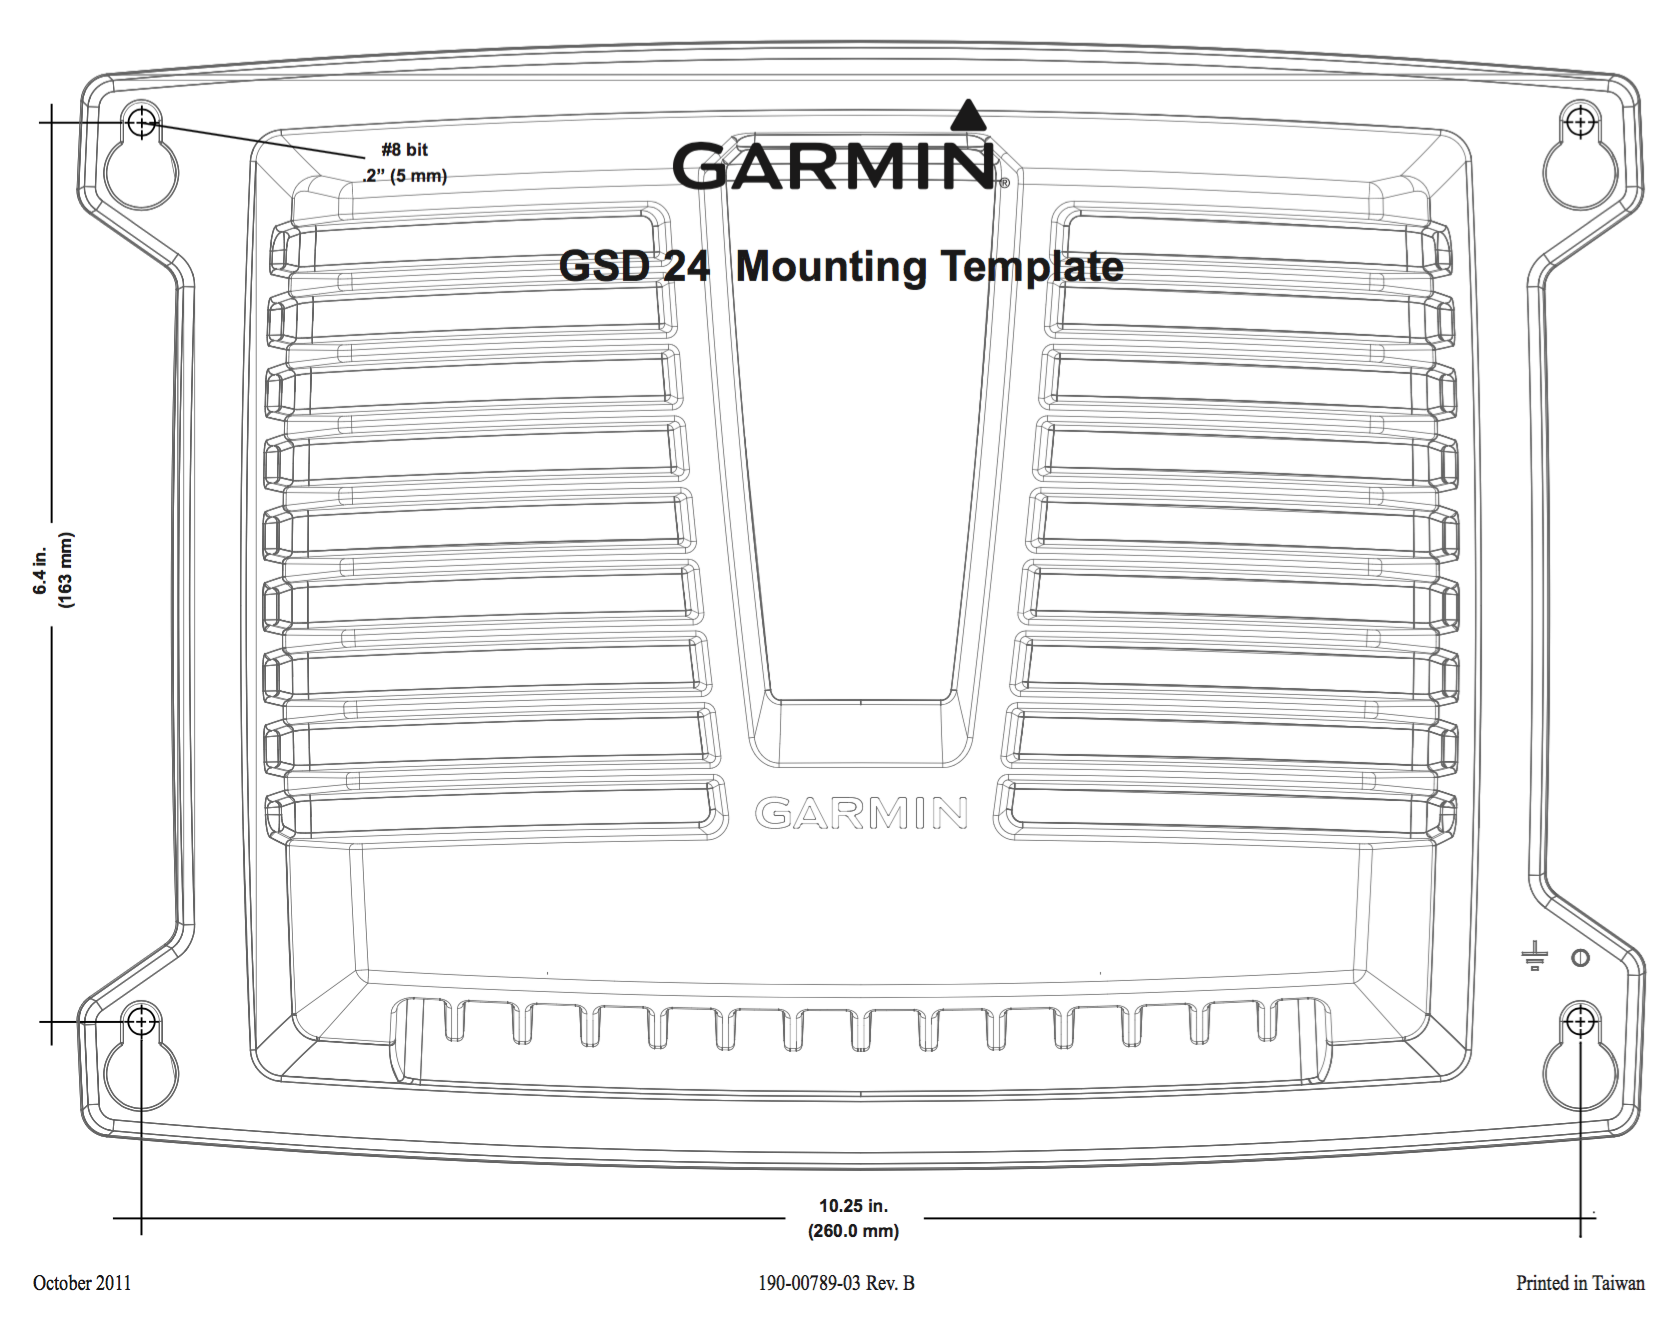 gsd24 sonar mounting template